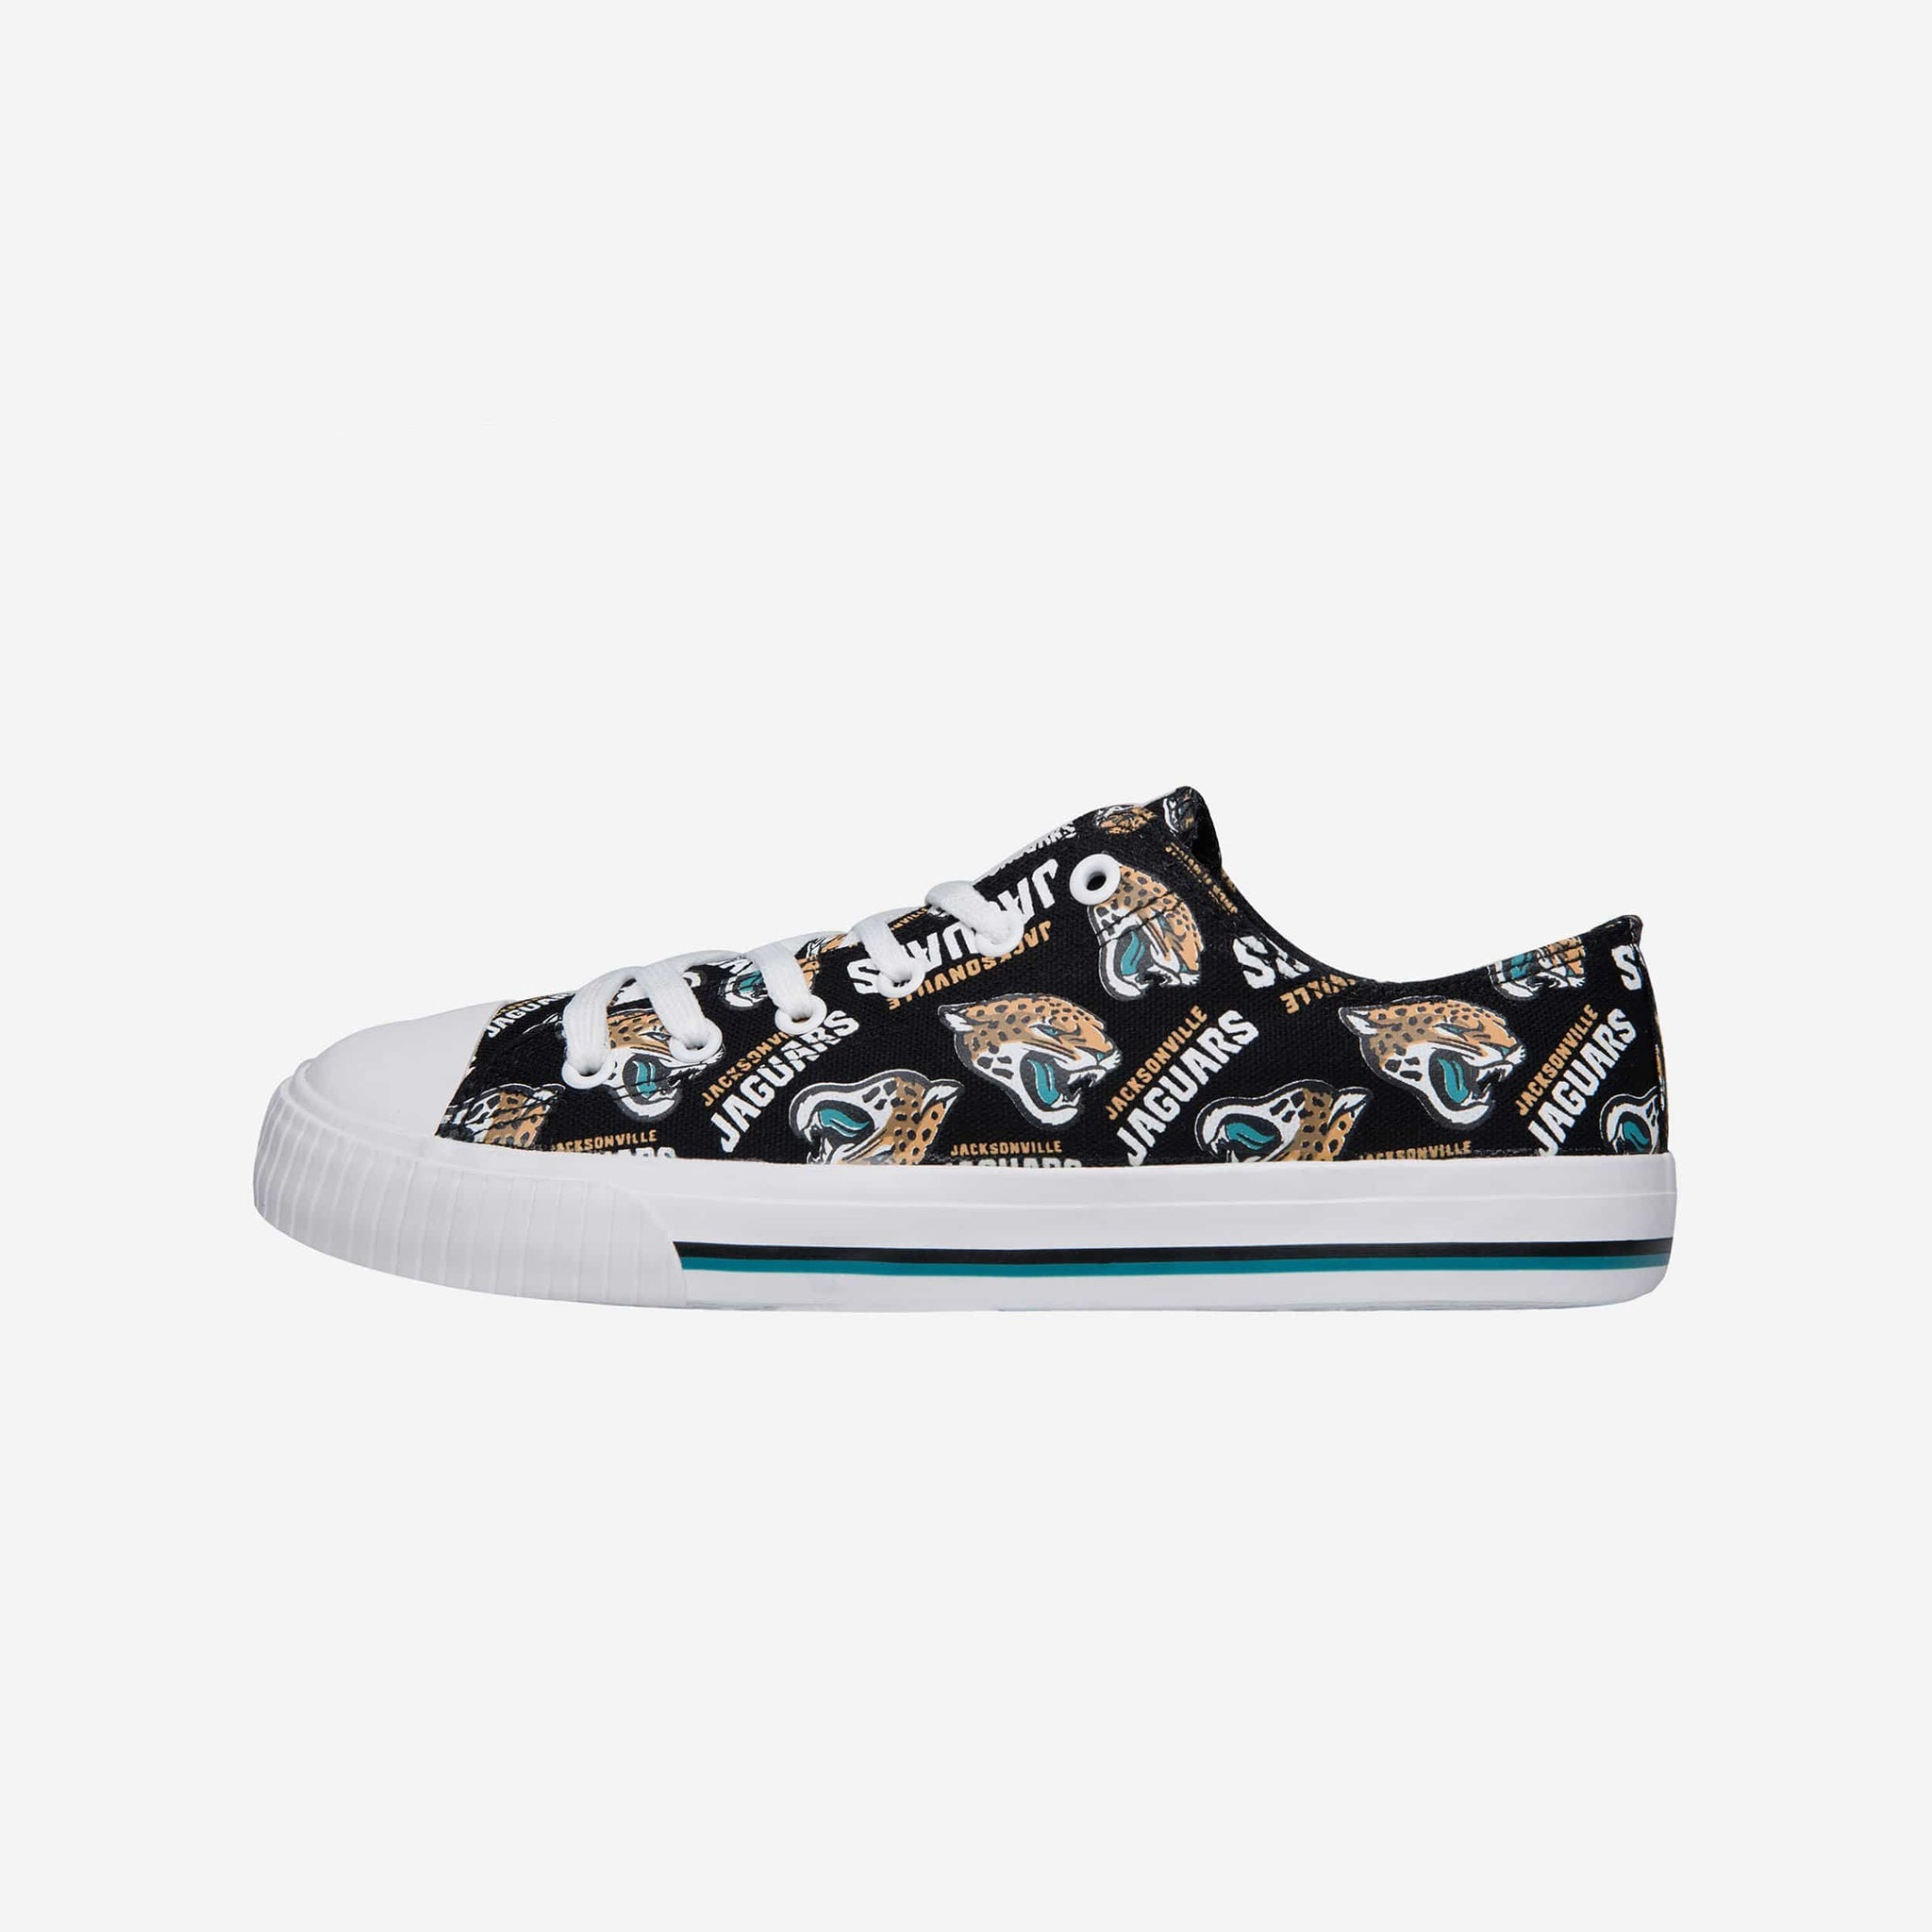 a3822993376144 Jacksonville Jaguars Womens Low Top Repeat Print Canvas Shoe FOCO - FOCO.com